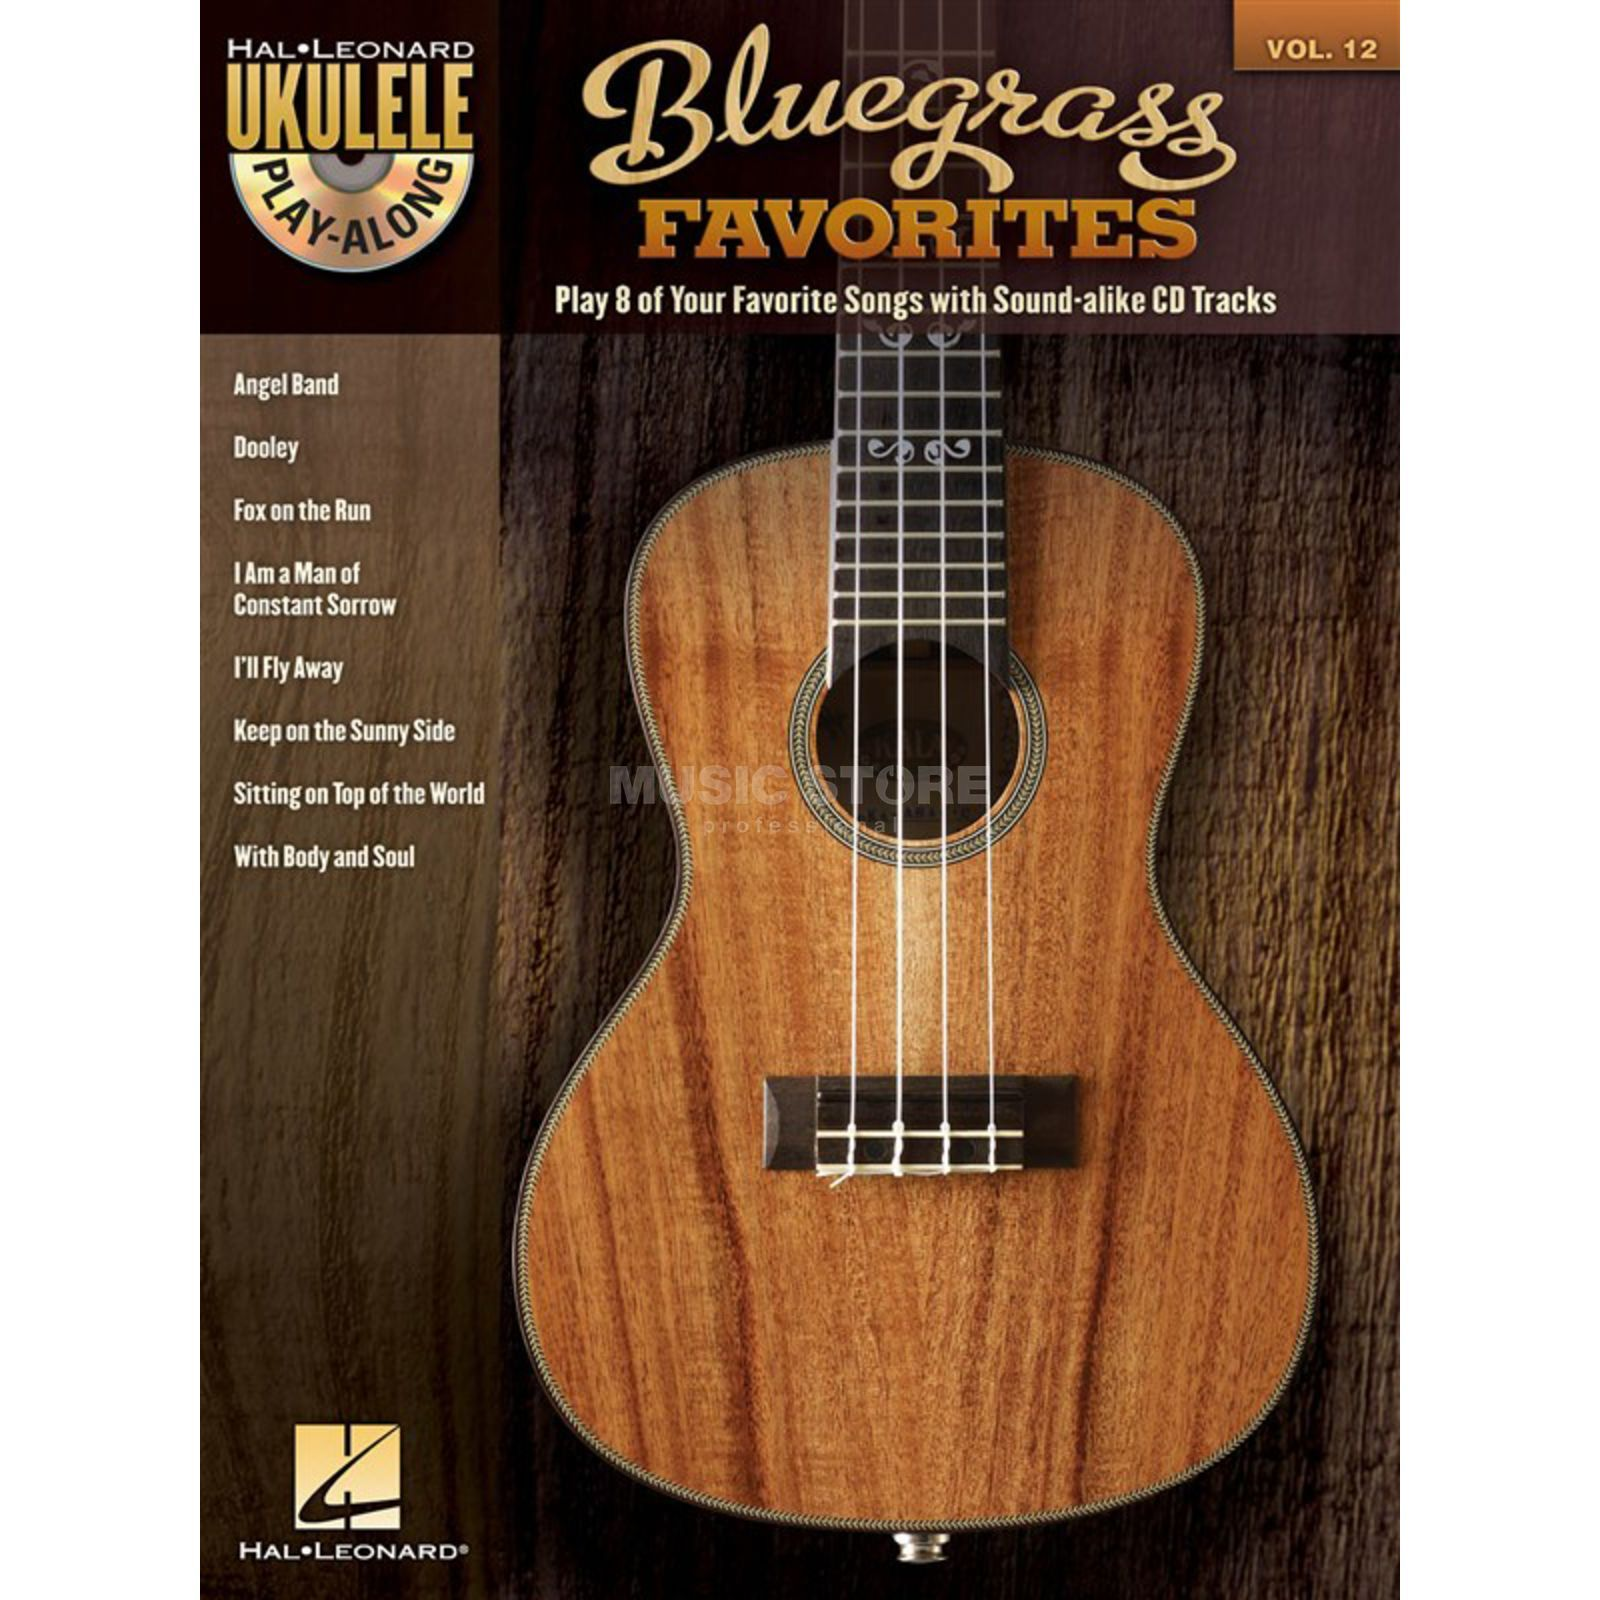 Hal Leonard Ukulele Play-Along: Bluegrass Vol. 12, Ukulele mit CD Produktbild